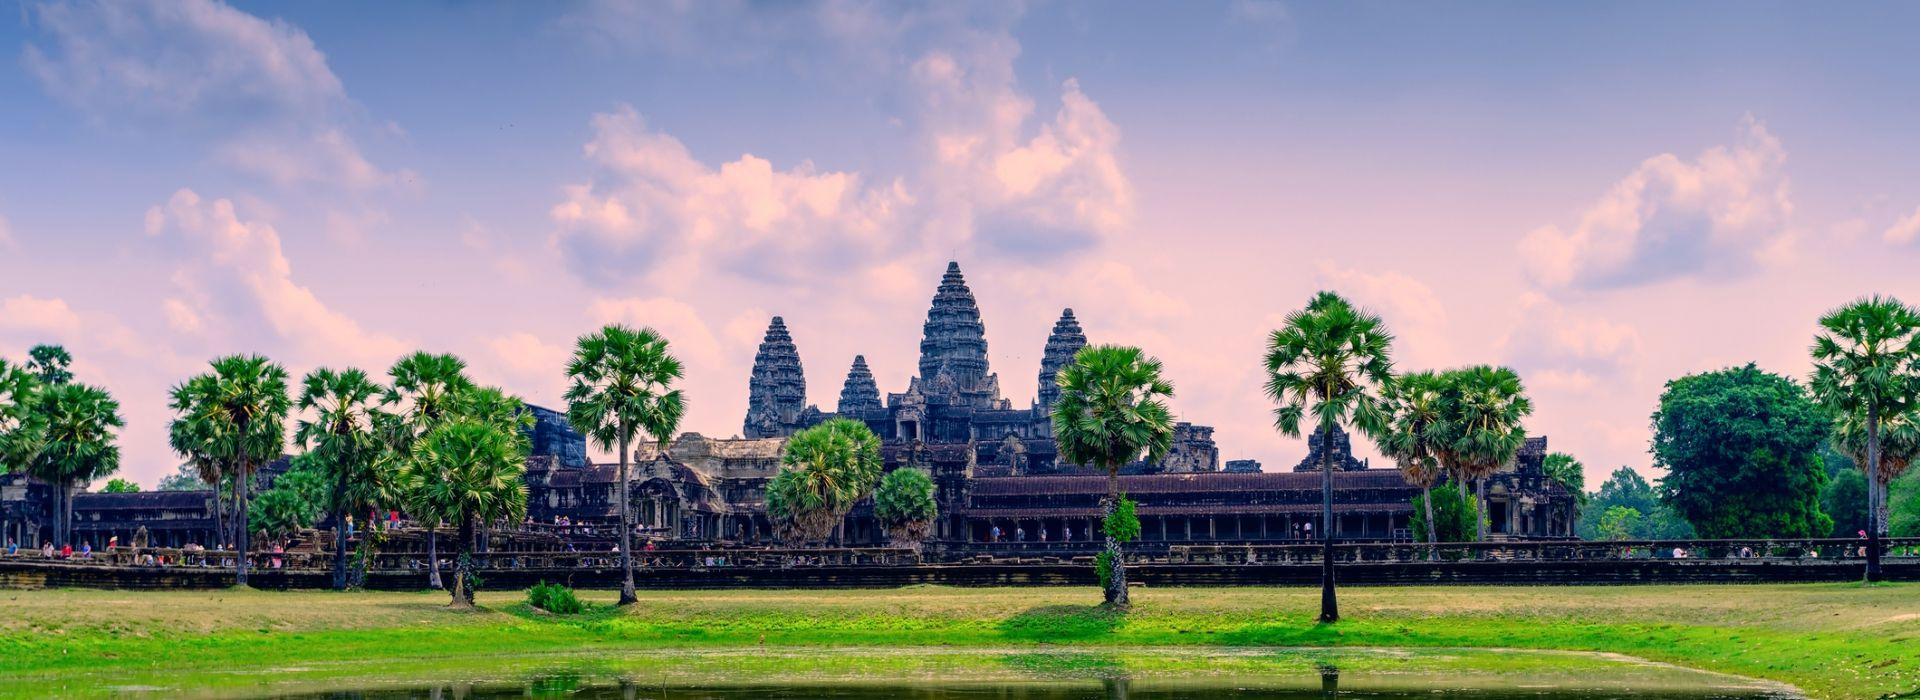 Rainforest and jungle visits Tours in Phnom Penh